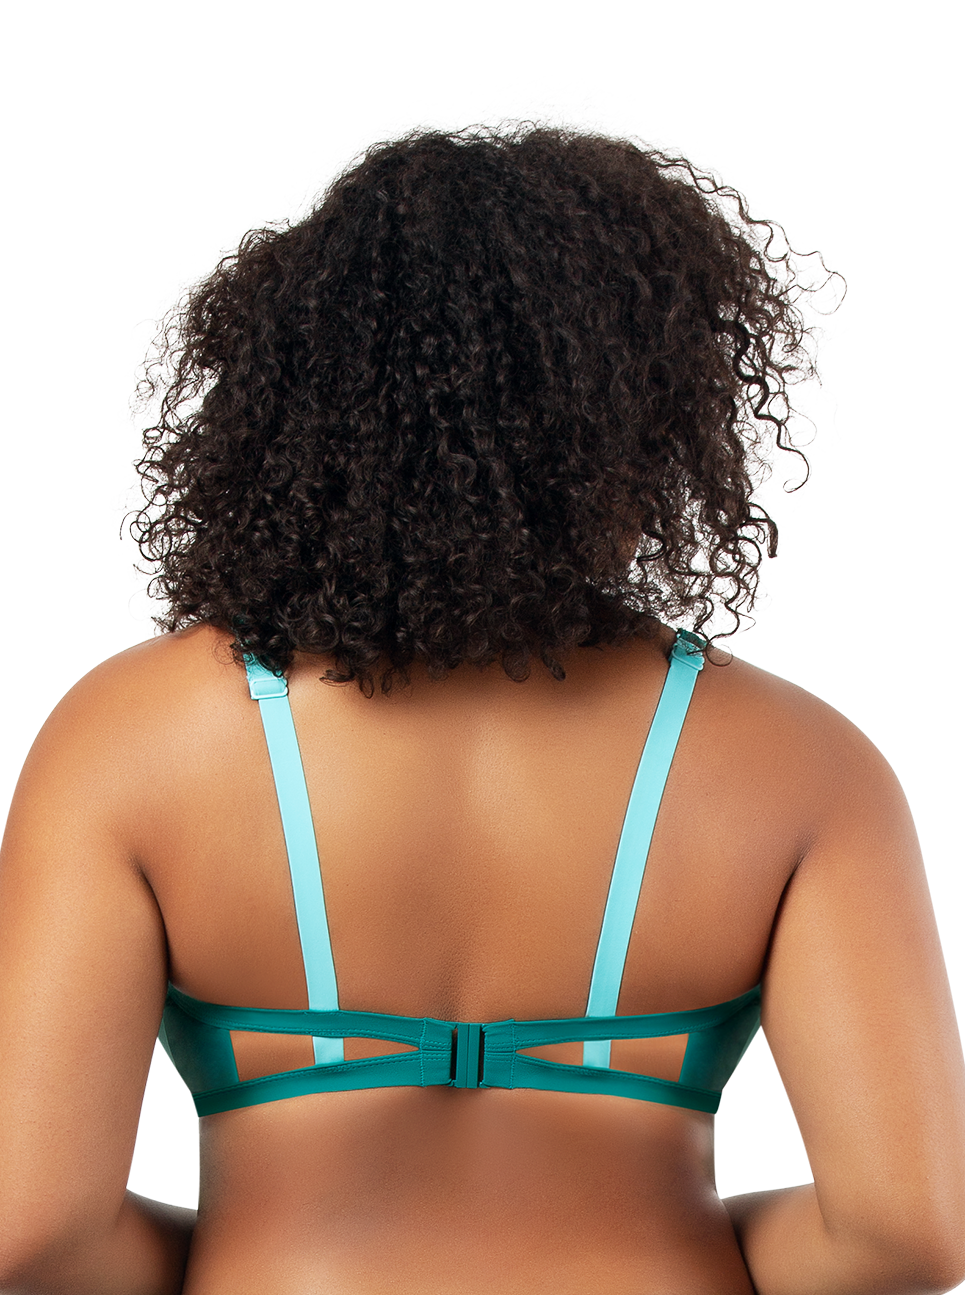 PARFAIT Lauren TriangleSwimTopS8222 DarkMintWTIbetanStone Black - Lauren Triangle Swim Top Dark Mint w Tibetan Stone S8222